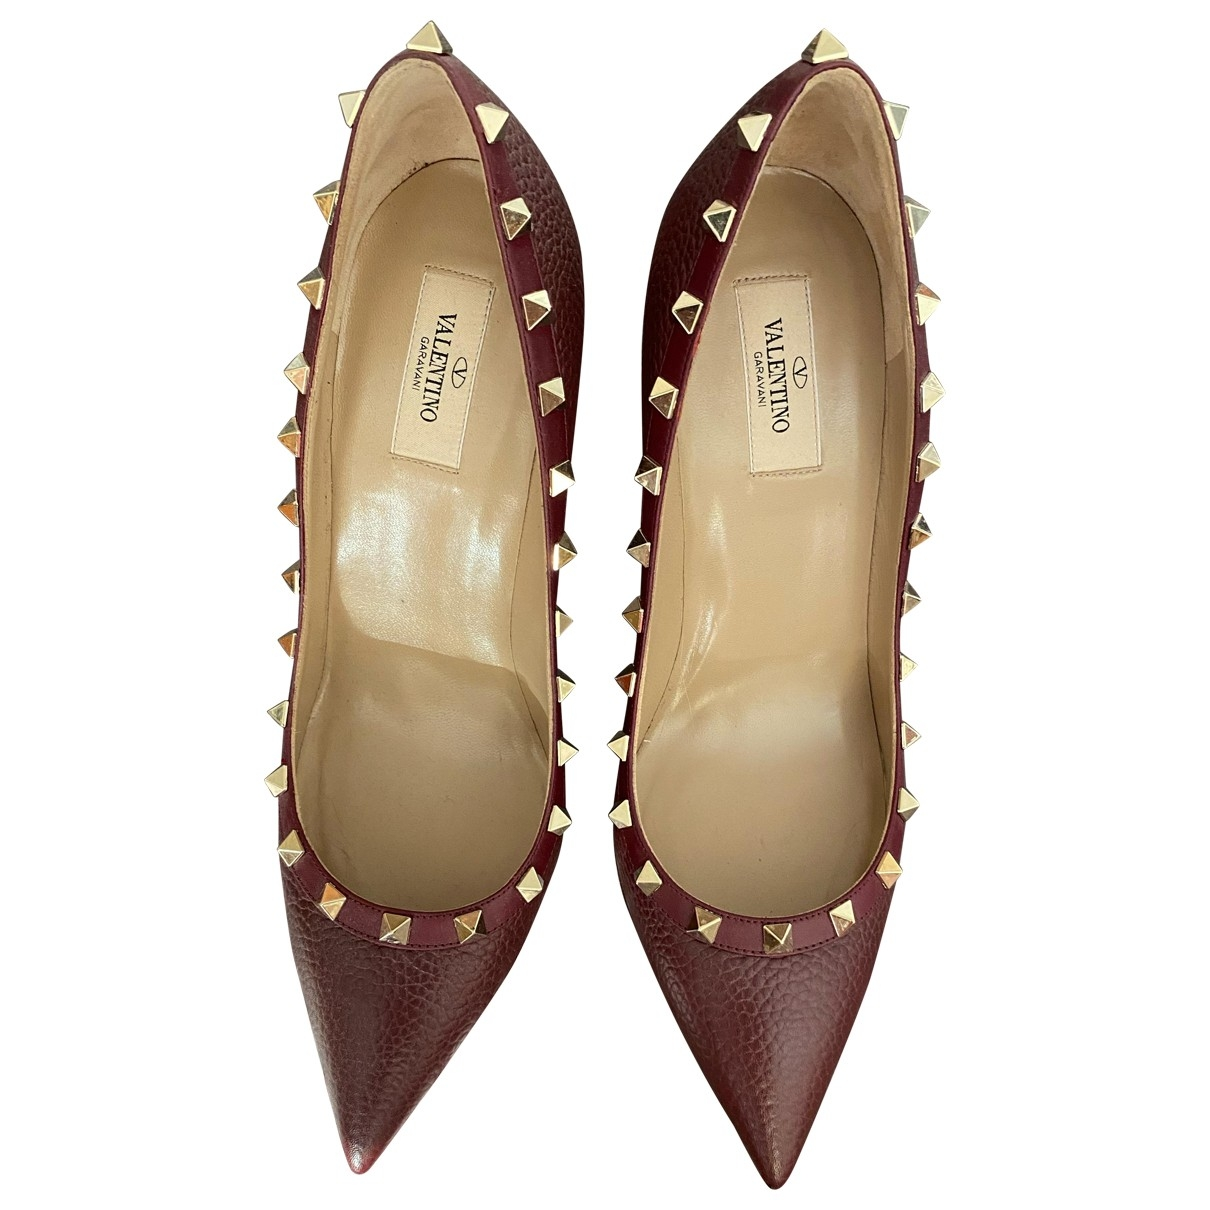 Valentino Garavani Rockstud Burgundy Leather Heels for Women 41 EU